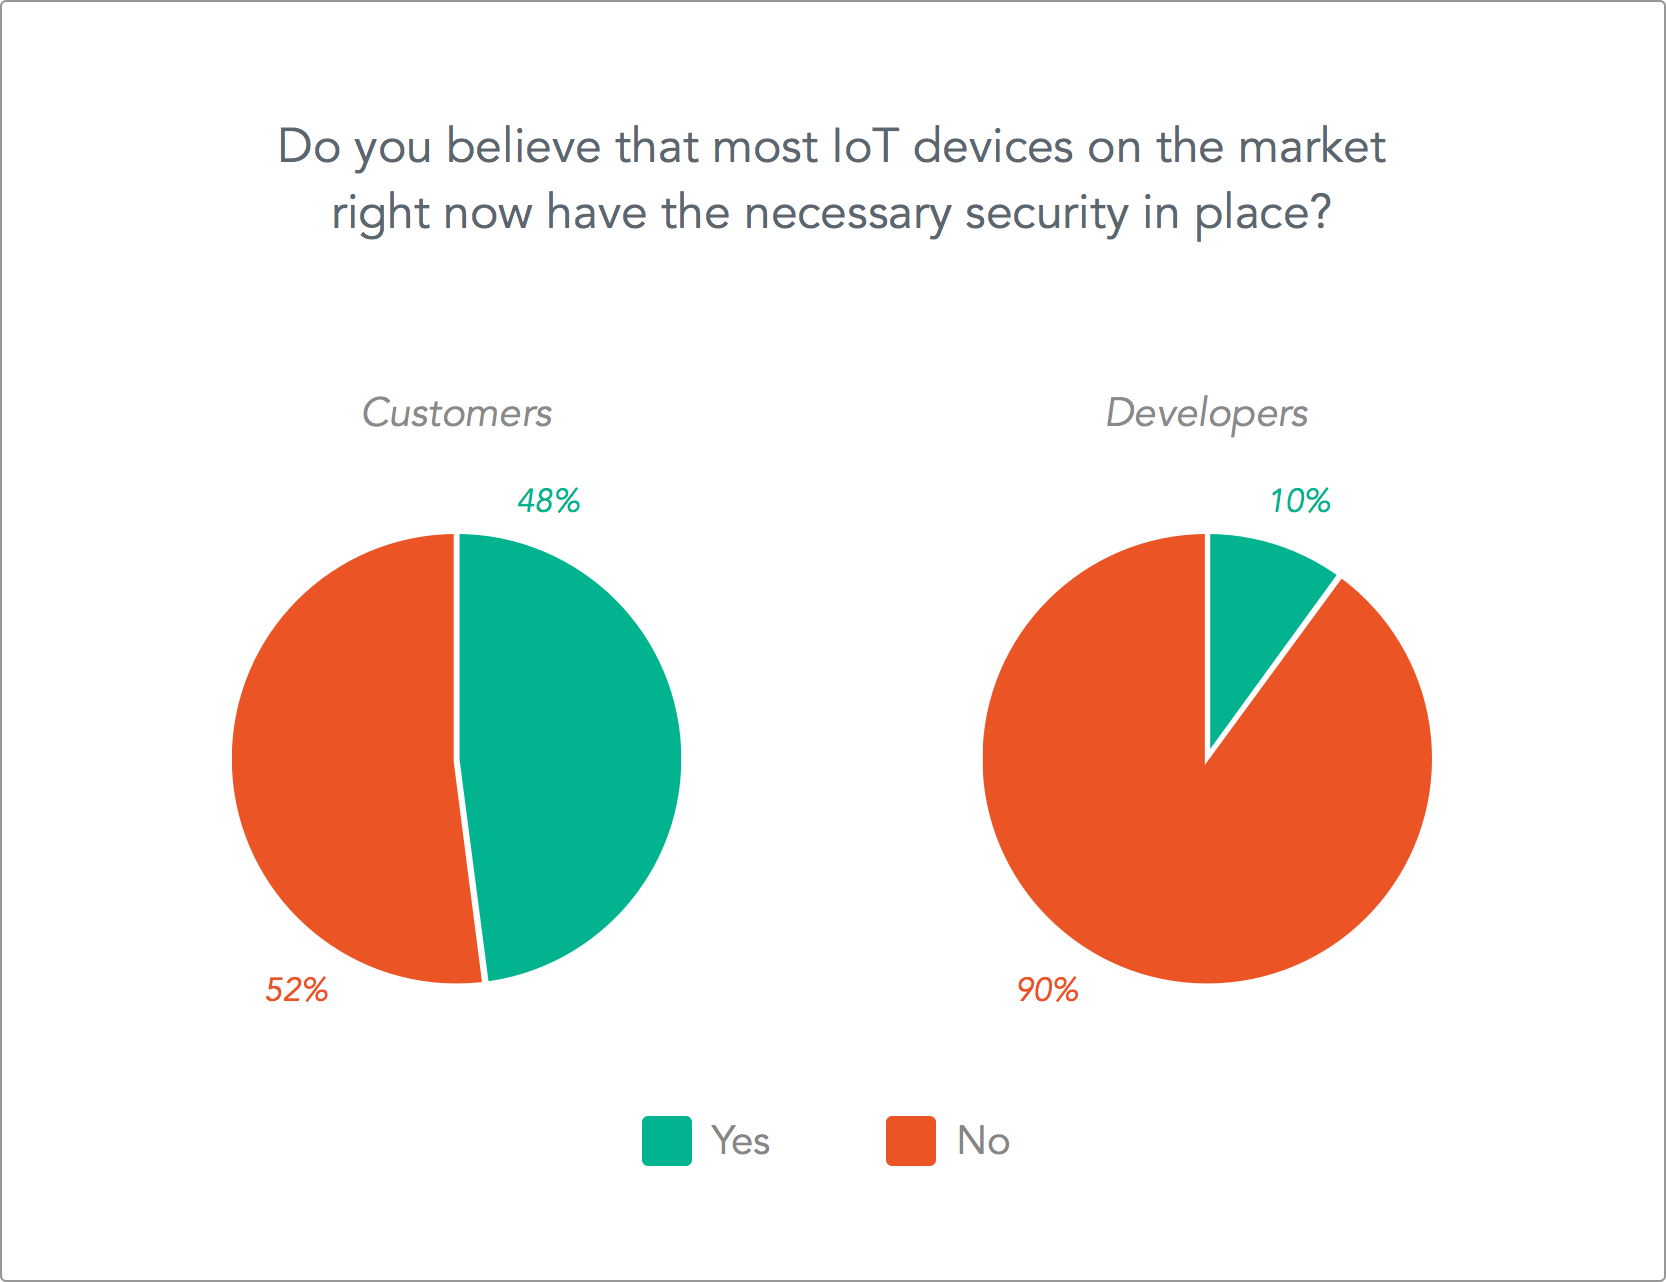 Do you believe that IoT devices are secure?